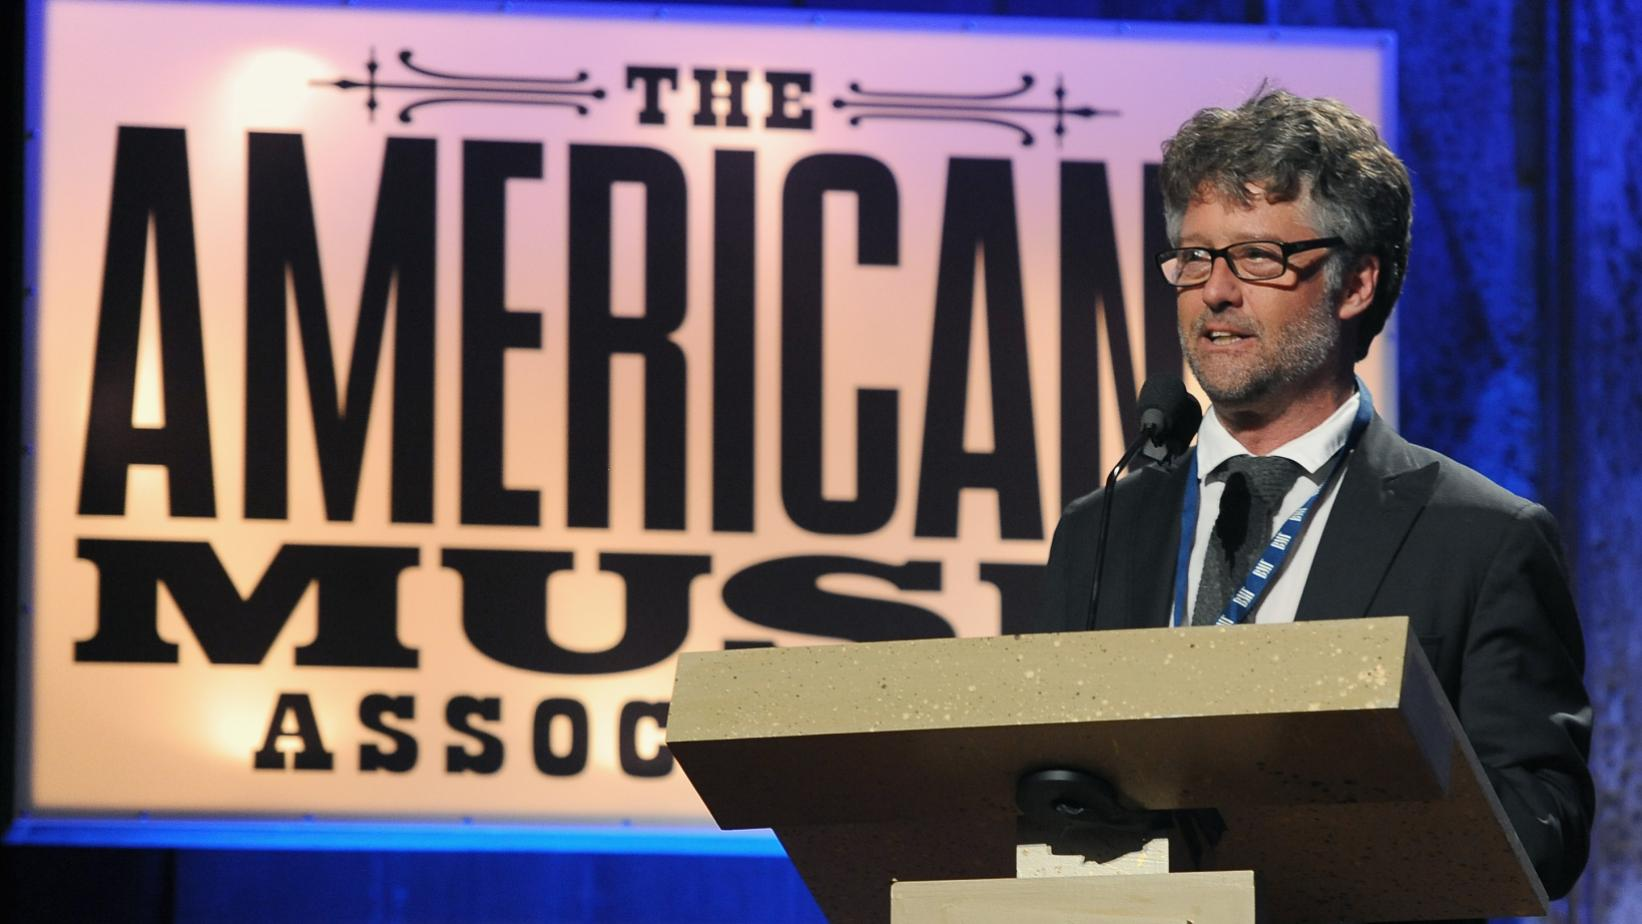 Jed Hilly of the Americana Music Association